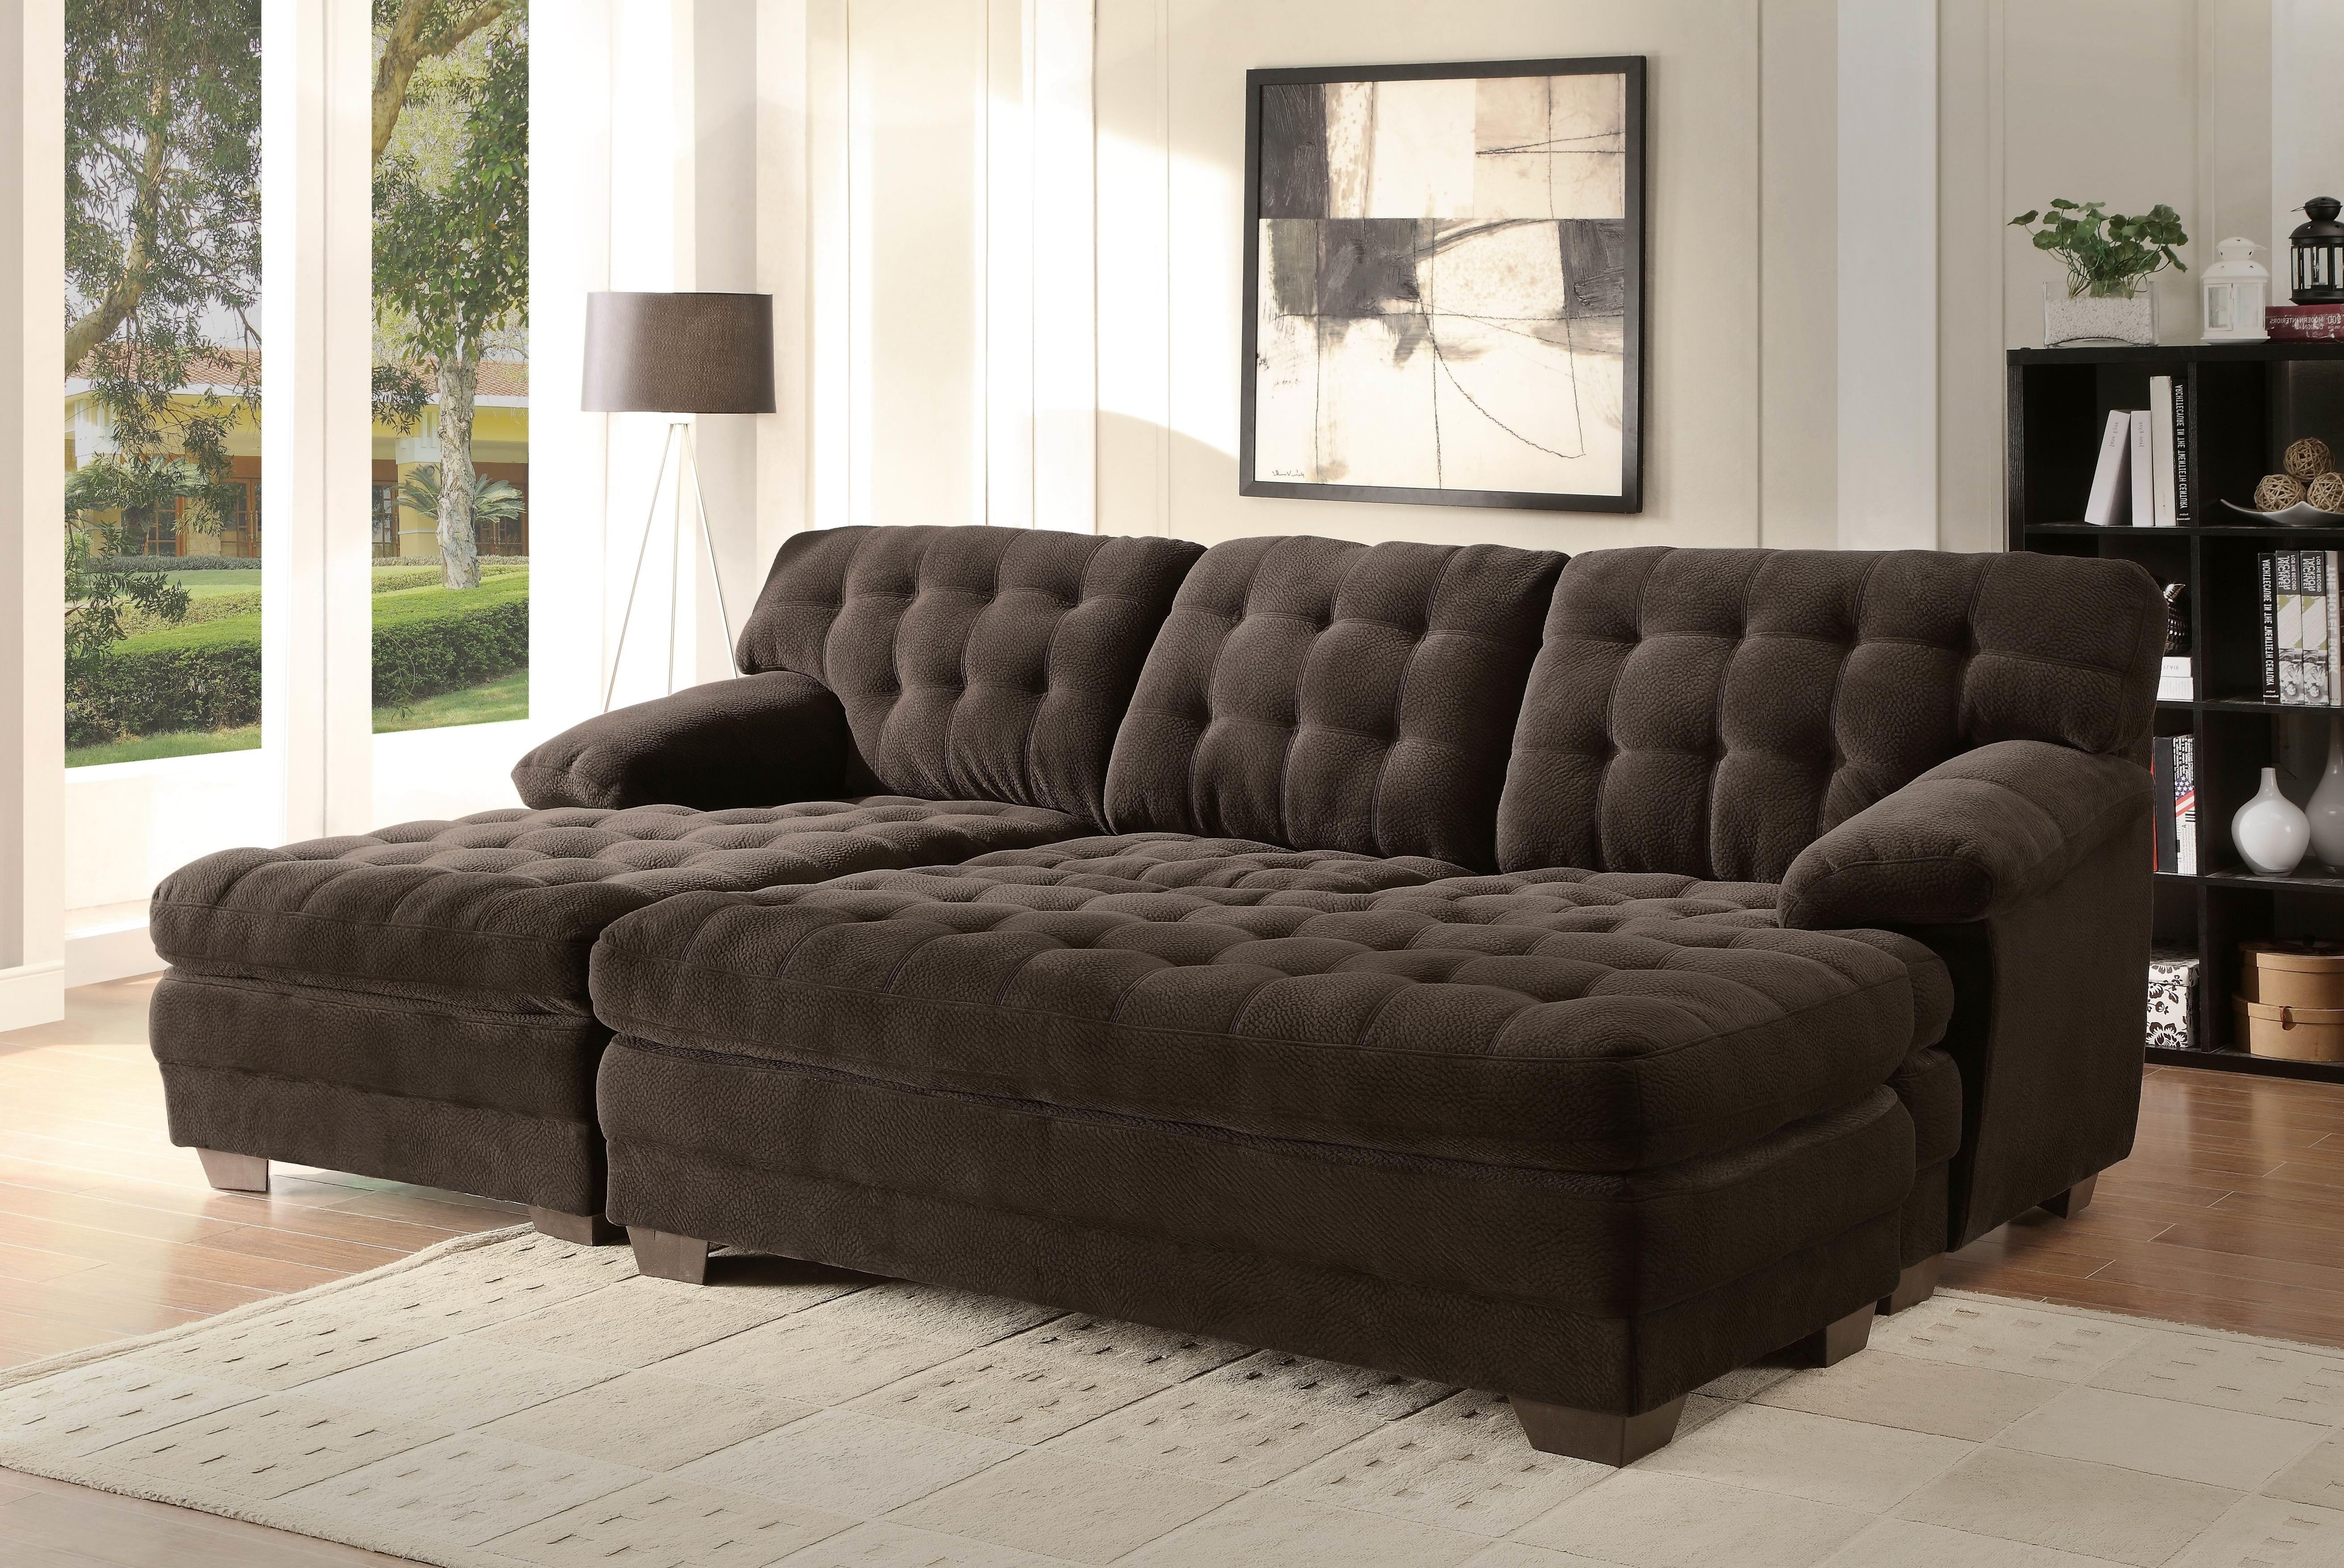 New Sectional Sofa With Large Ottoman 97 For Your Largest For Well Known Sofas With Large Ottoman (View 7 of 15)